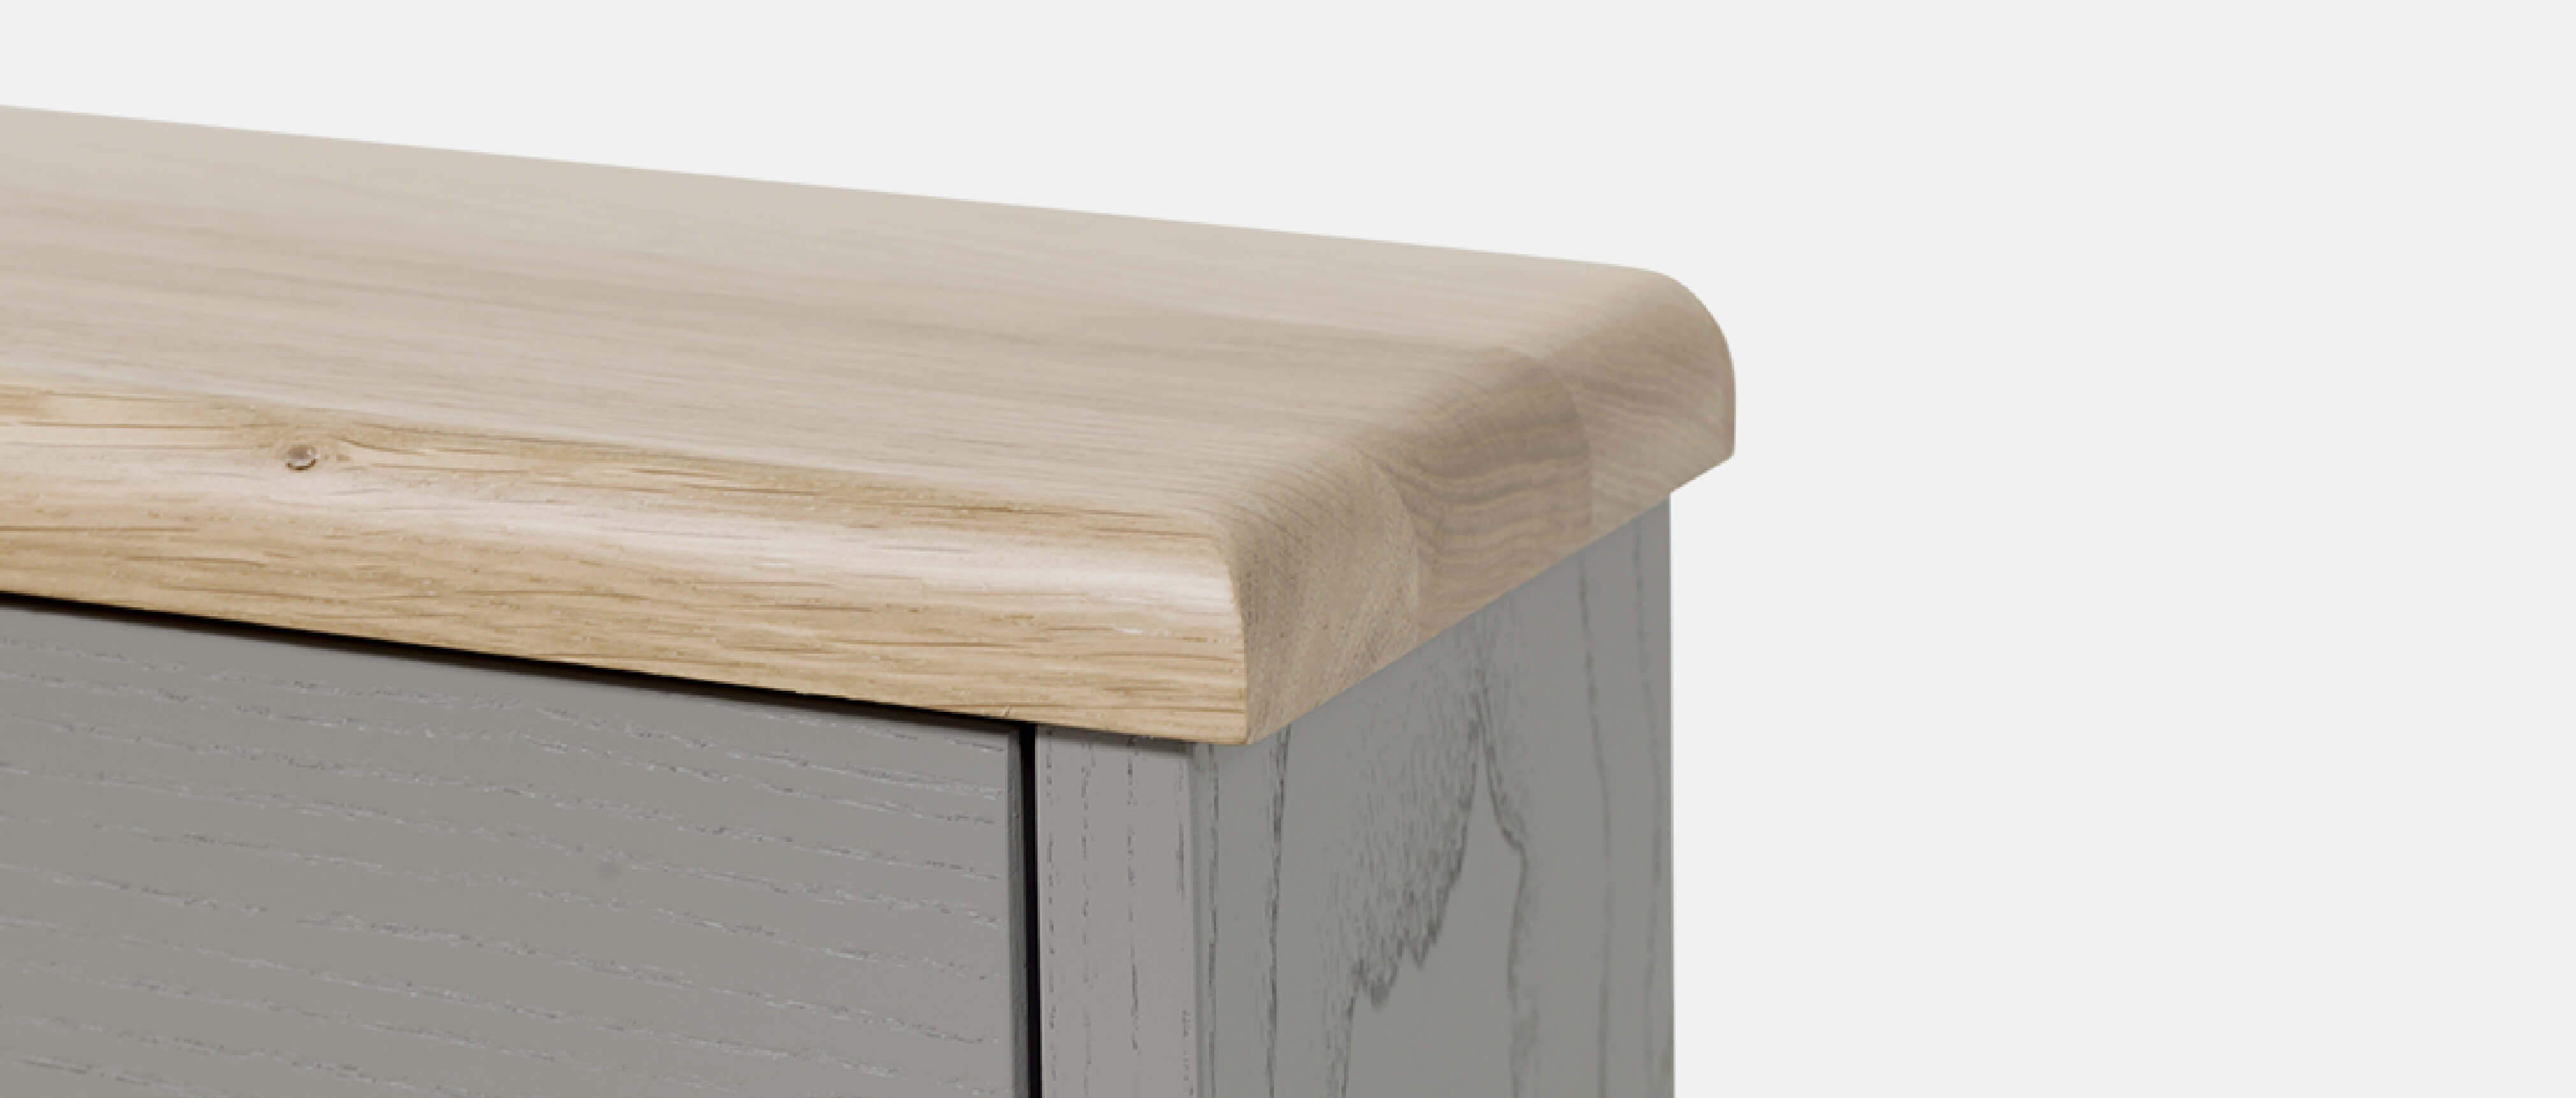 Natural wood furniture tops solid oak